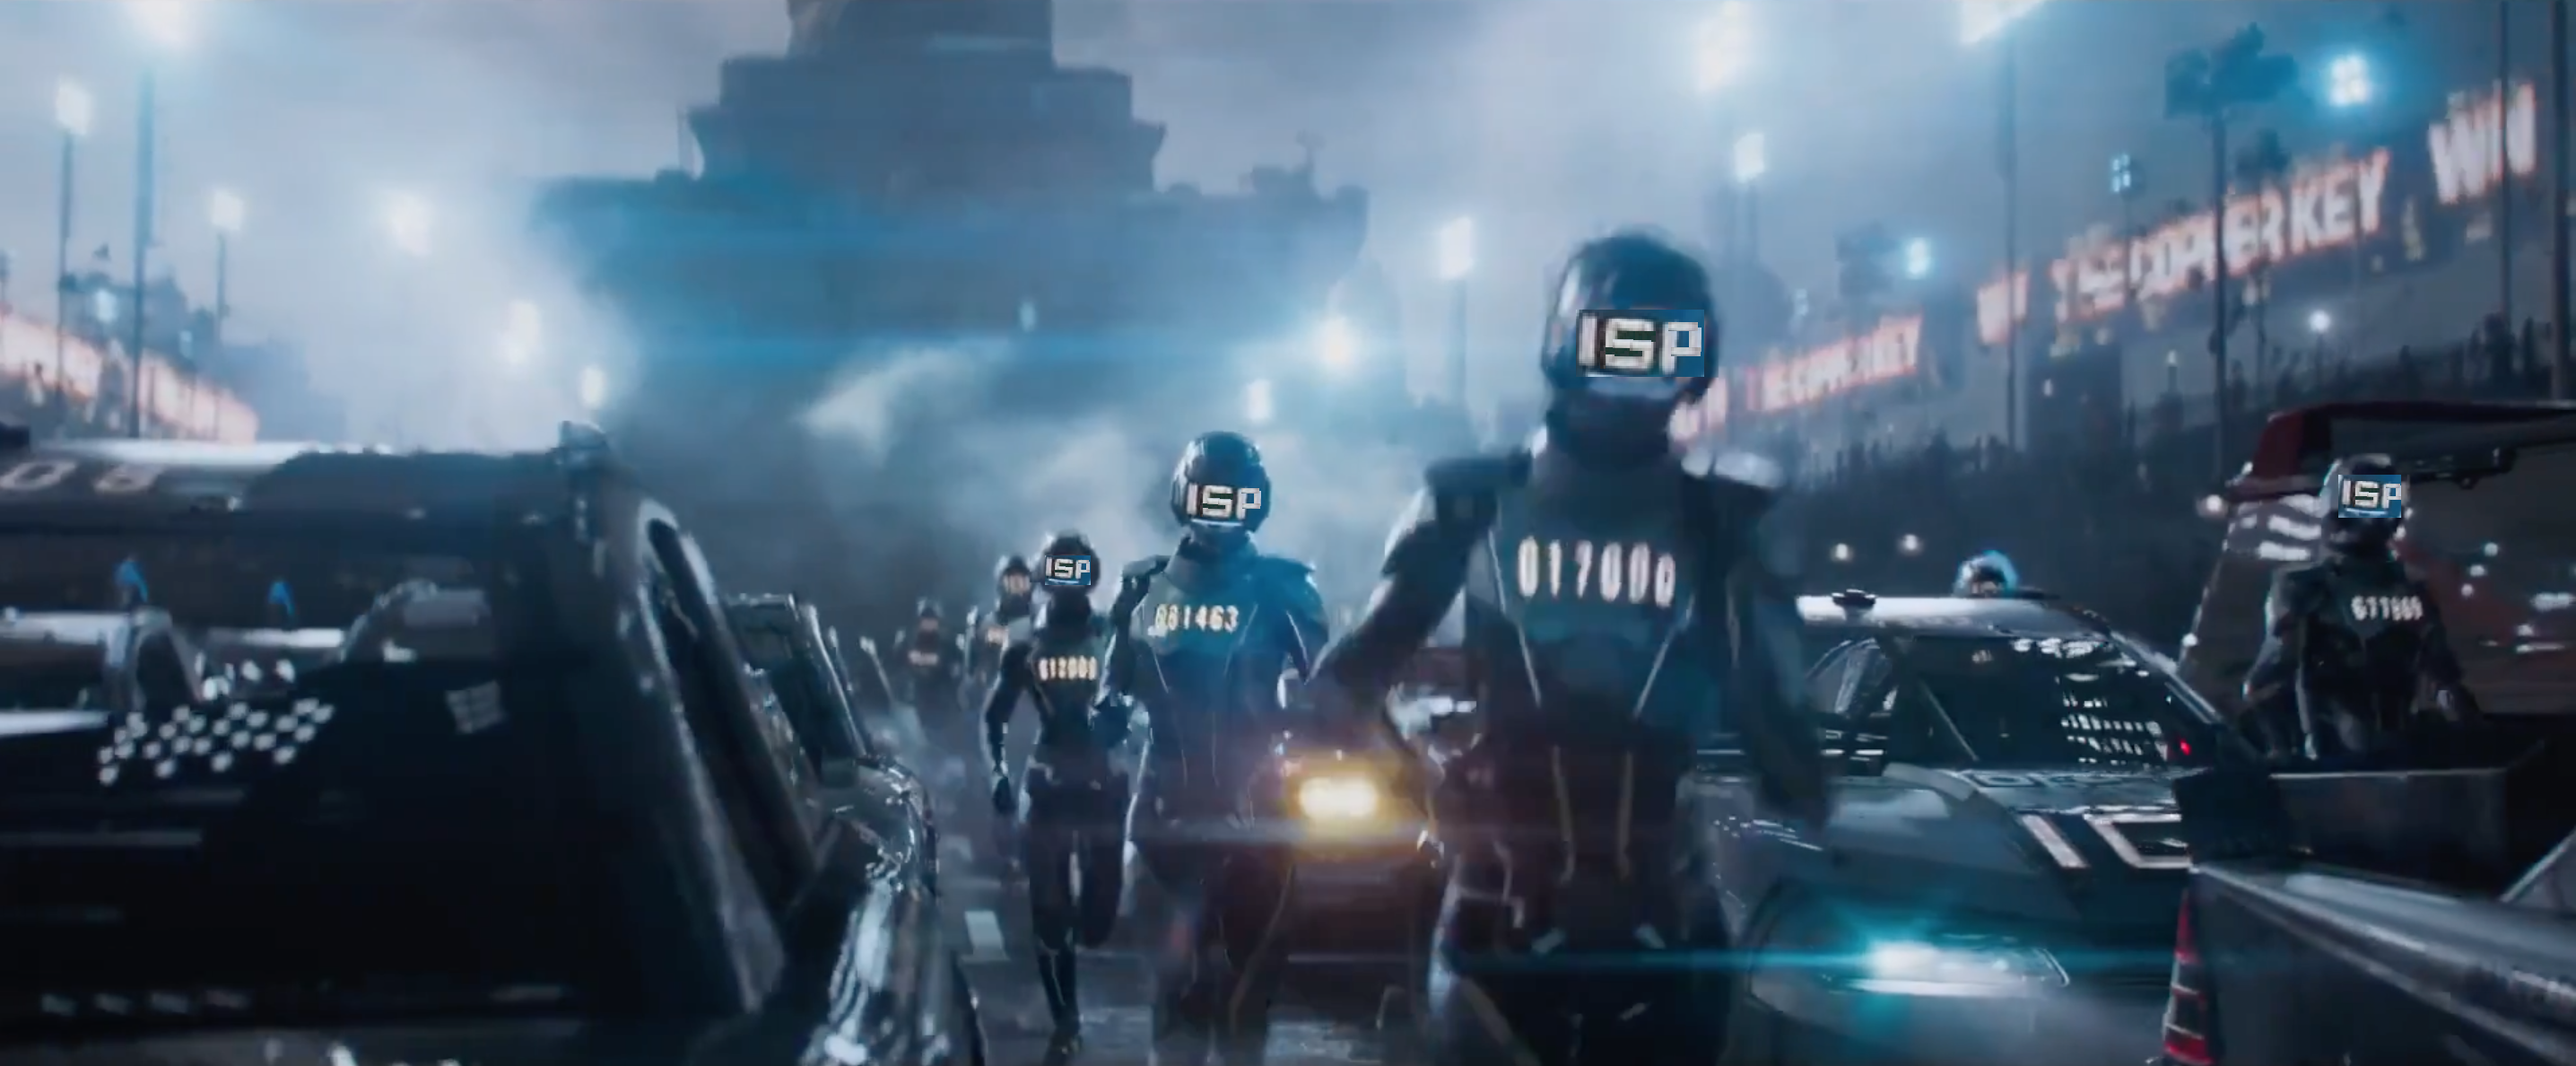 Insofar as Ready Player One parallels net neutrality, IOI